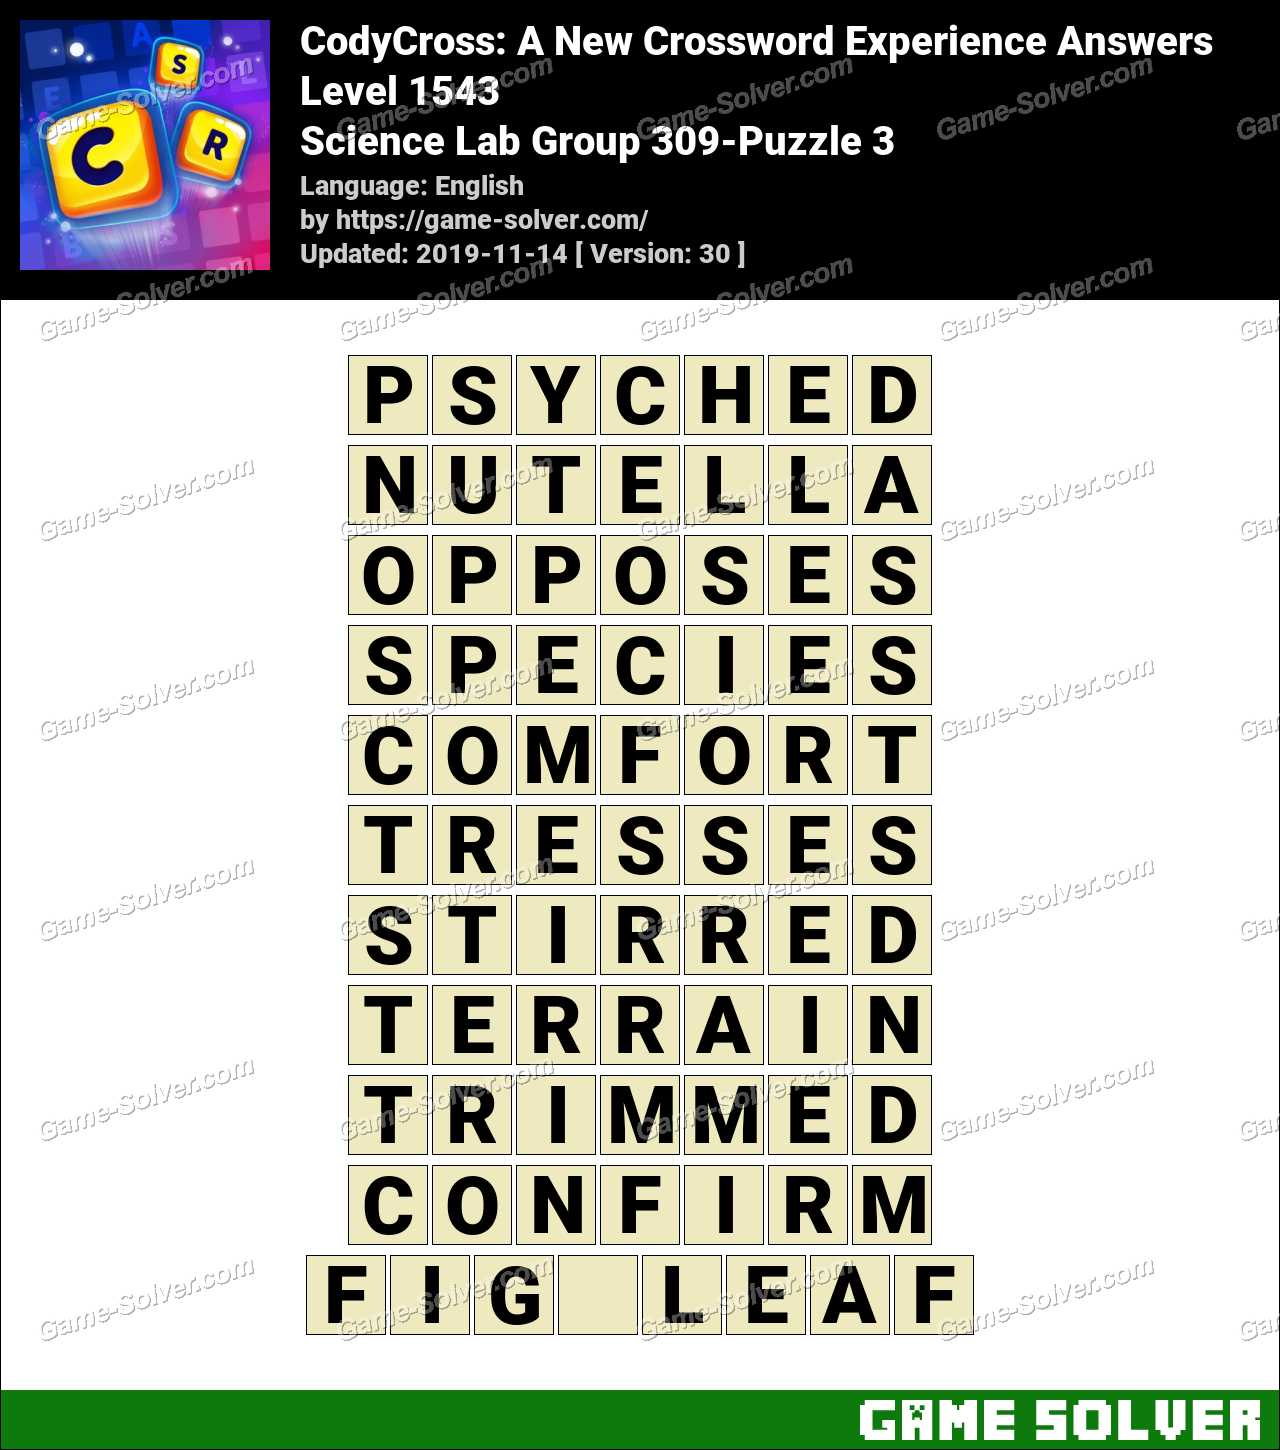 CodyCross Science Lab Group 309-Puzzle 3 Answers